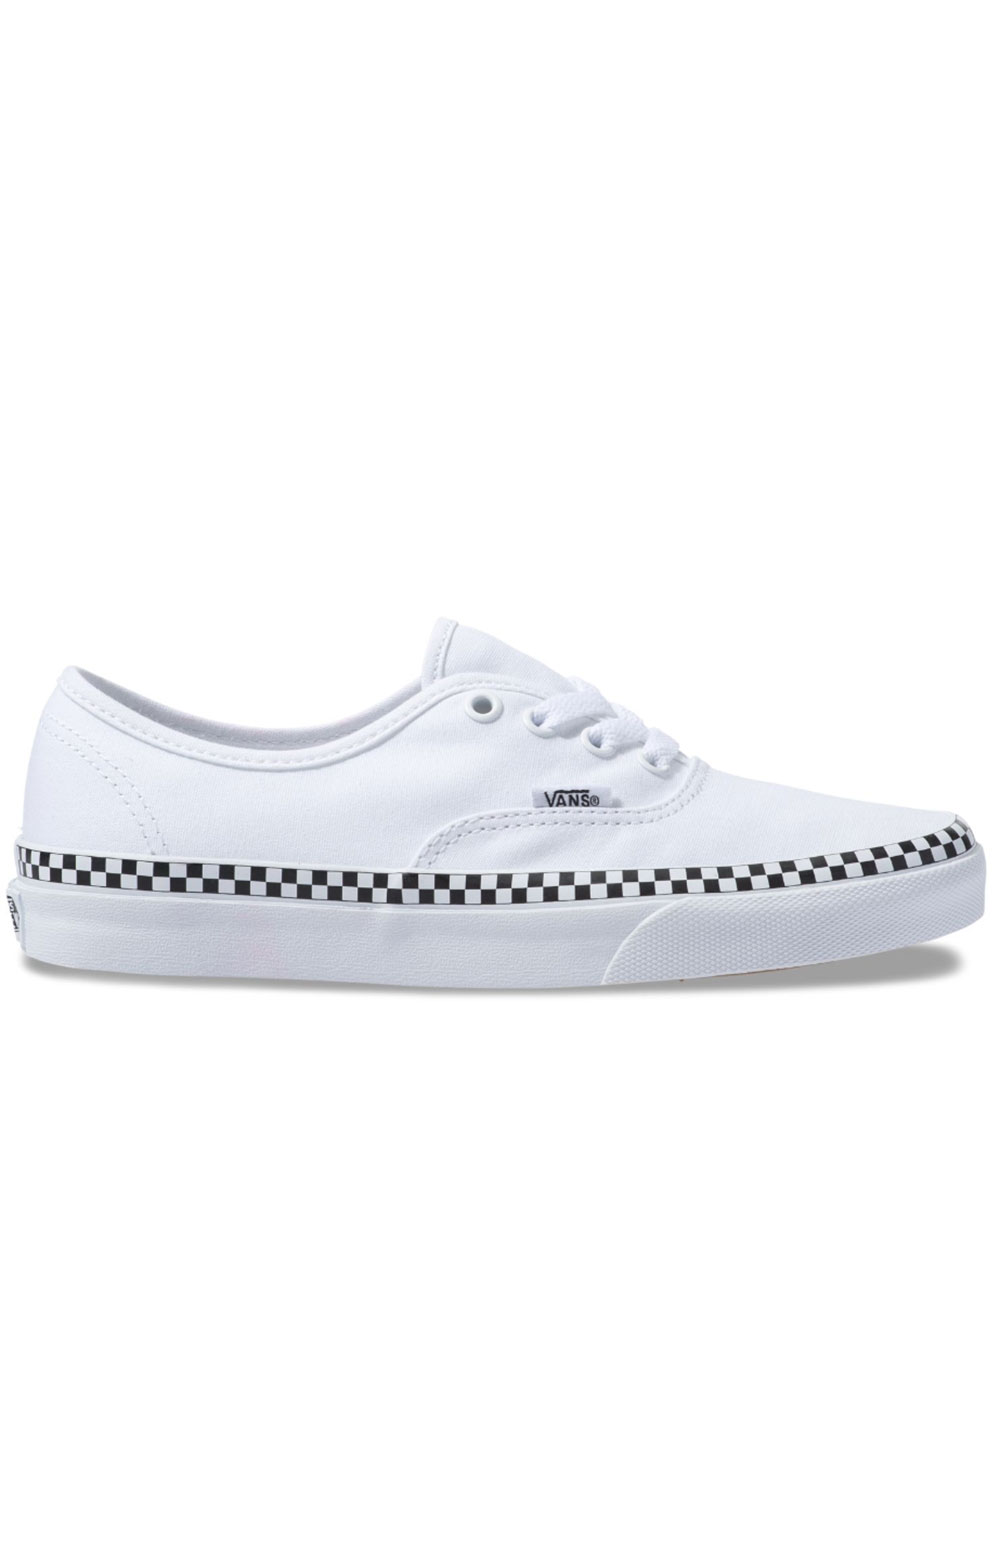 (8EMVJU) Check Foxing Authentic Shoe - True White